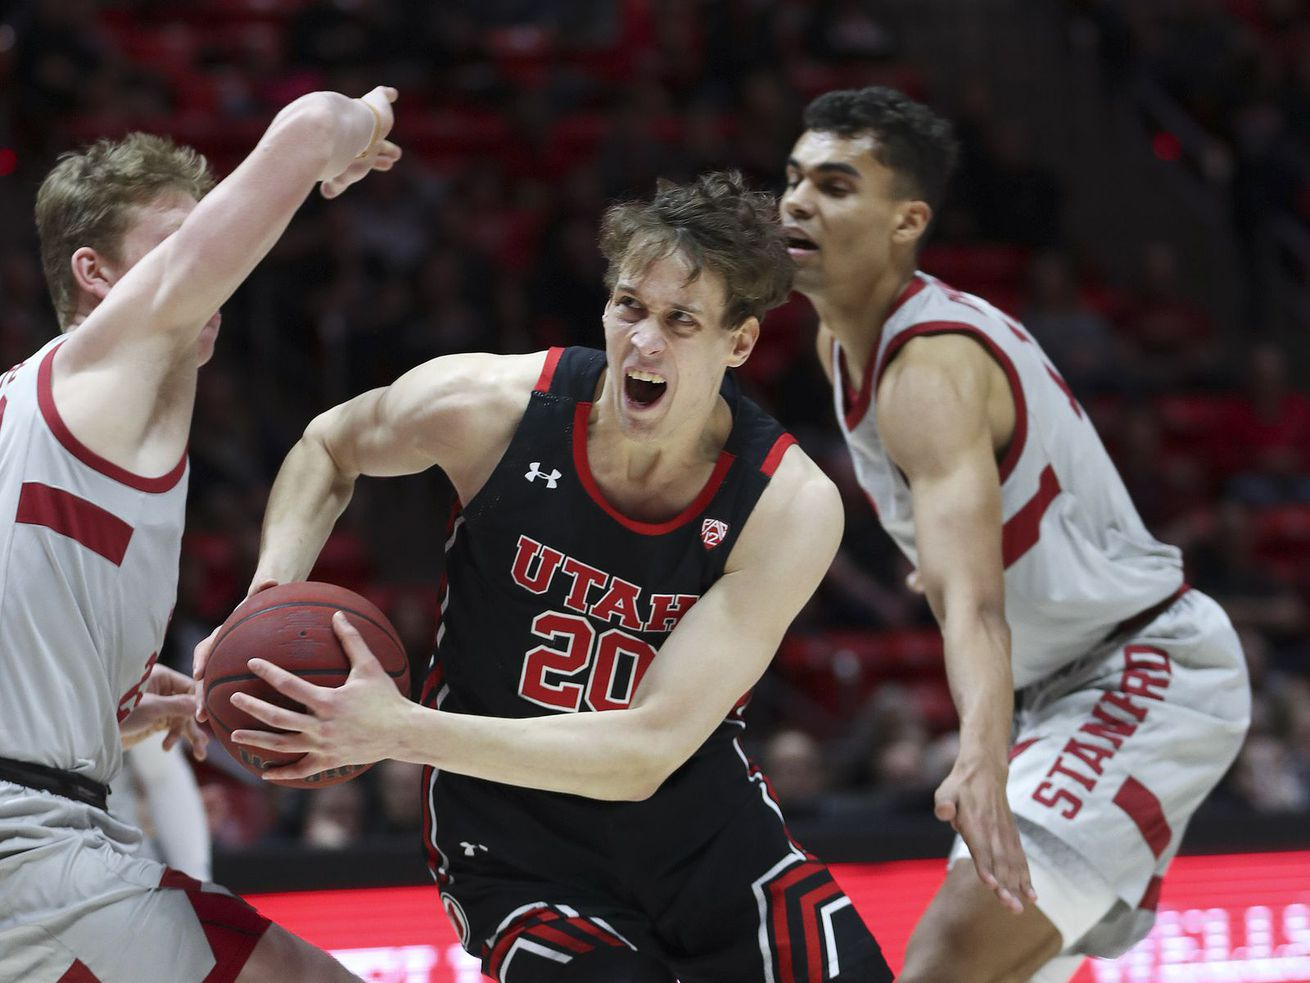 Utah facing a desperate Stanford squad looking for NCAA spot in Wednesday road game